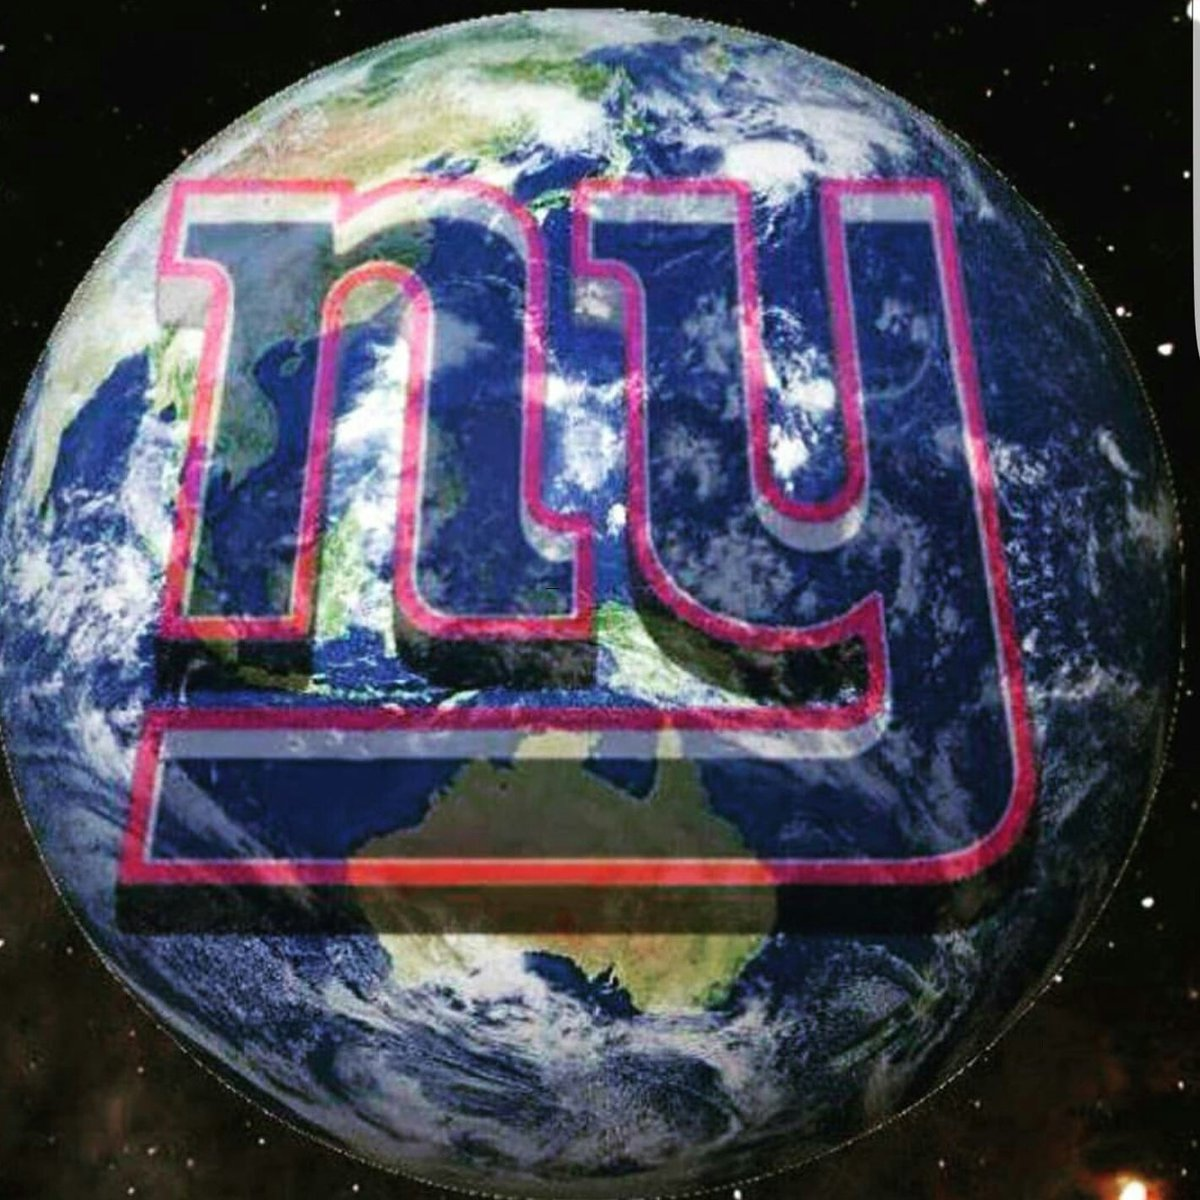 HAPPY EARTH DAY or as us GIANTS fans like to call it BRANDON JACOBS DAY #GIANTS #GiantsPride #earthday   @gatorboyrb<br>http://pic.twitter.com/b8wBfd1jvr